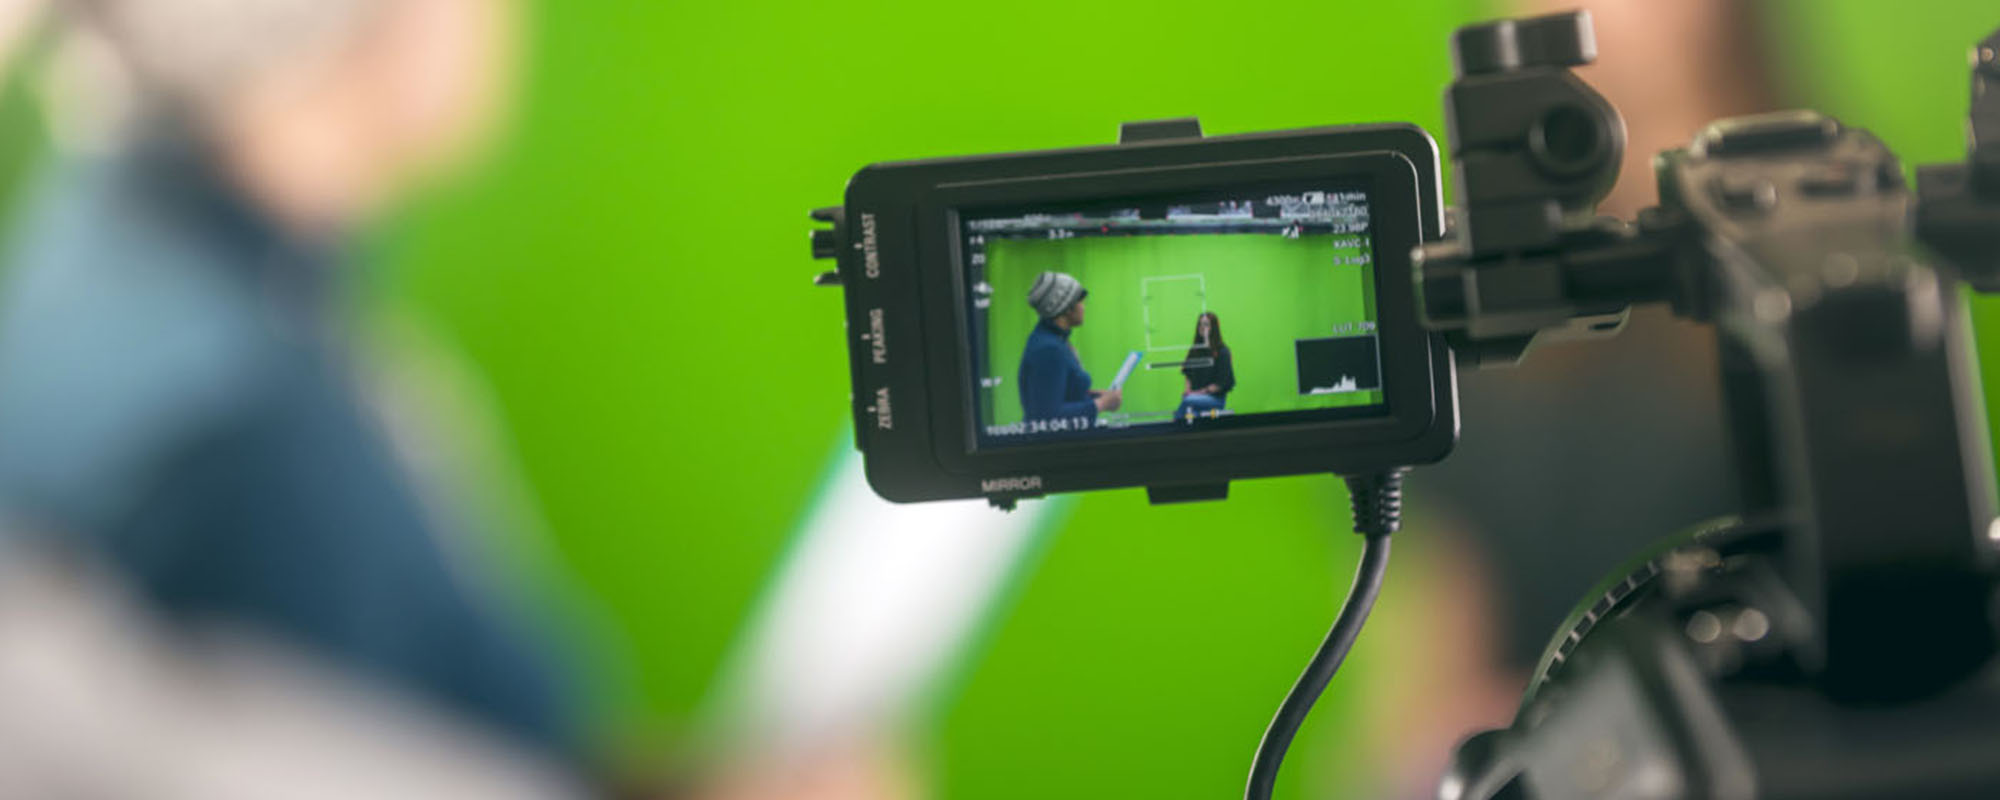 Film – A camera monitor shows two students working in front of a green screen.